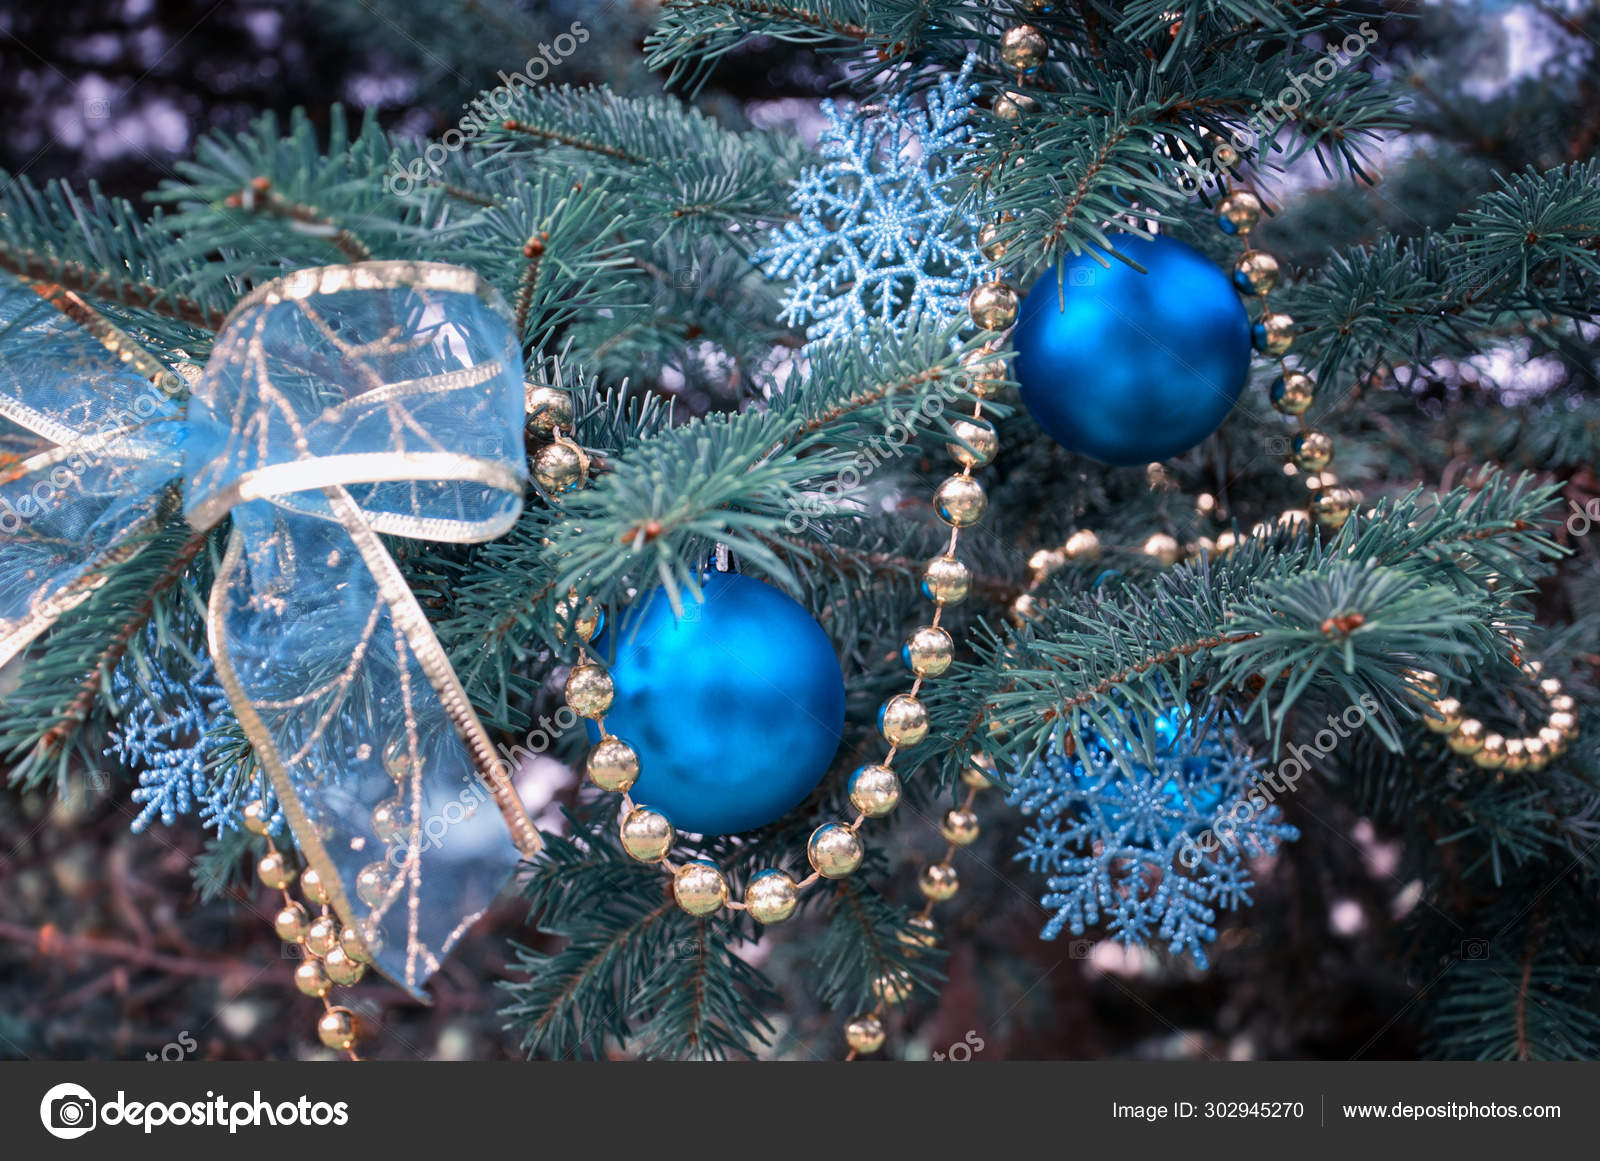 Close Up Of A Christmas Tree With Rose Gold And Turquoise Decorations Balls Snowflakes Bows Beads On A Blurry Background With Snow Christmas And New Year Holidays Background Stock Photo Image By C